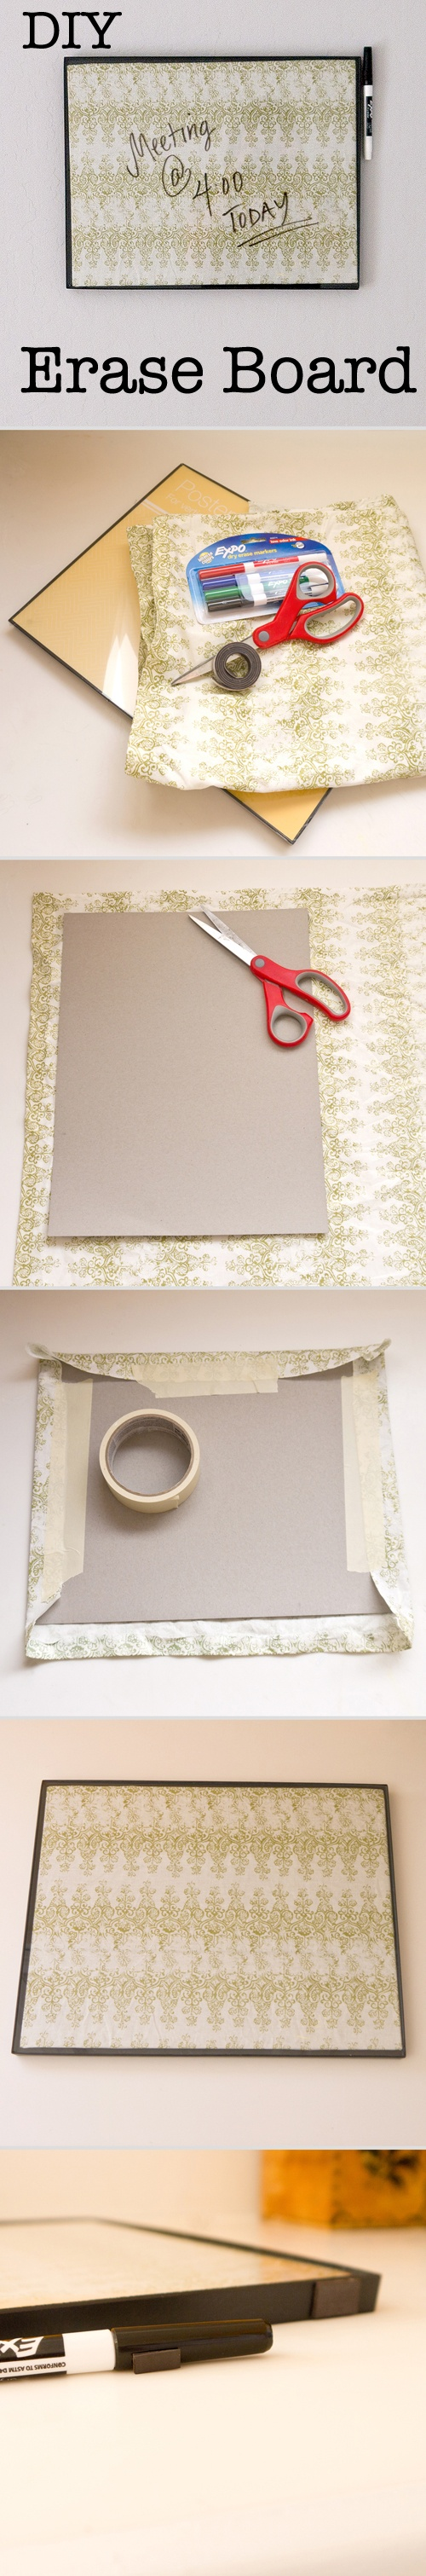 DIY dry erase board w/fabric | Craft Ideas/DIY | Pinterest | Erase ...